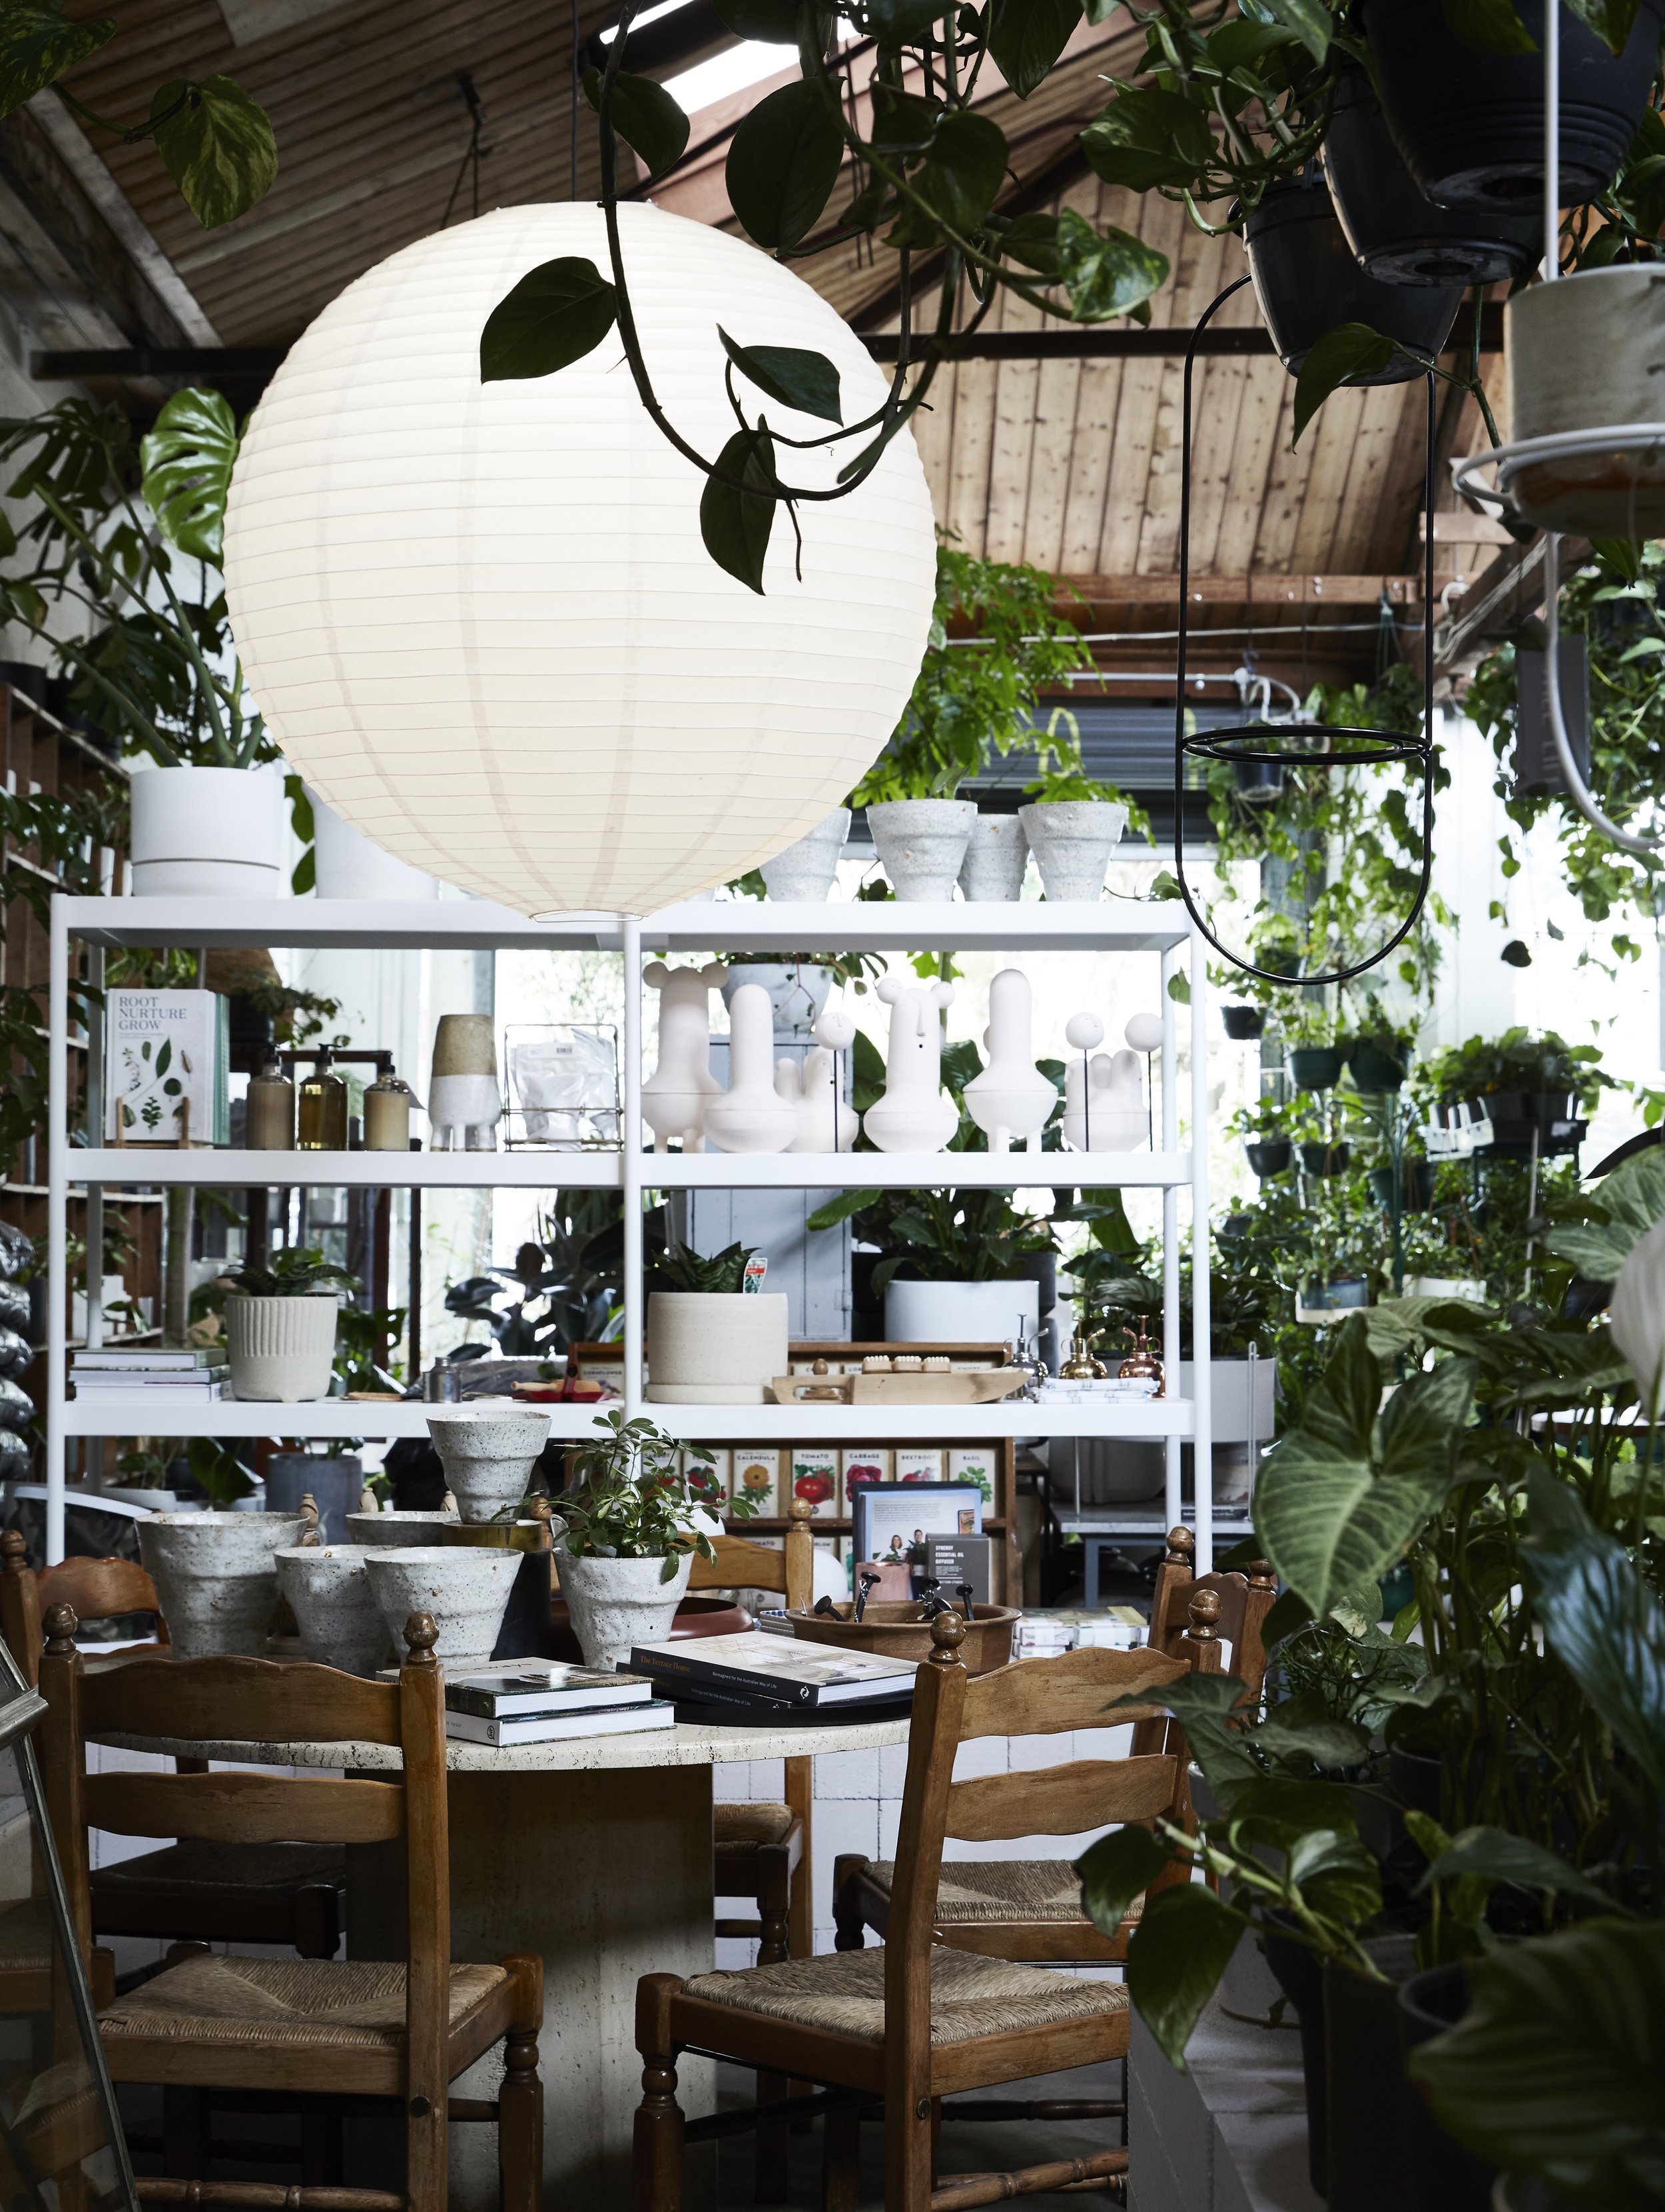 """""""We were excited to build an urban conservatory - housing a growing collection of sentimental plants which were acquired through friends, family and fellow gardeners,"""" says Jason.  The Plant Society  Flagship aims to embrace more than a retail space by allowing the community to meander and linger through a permanent oasis. Photo -  Armelle Habib ."""